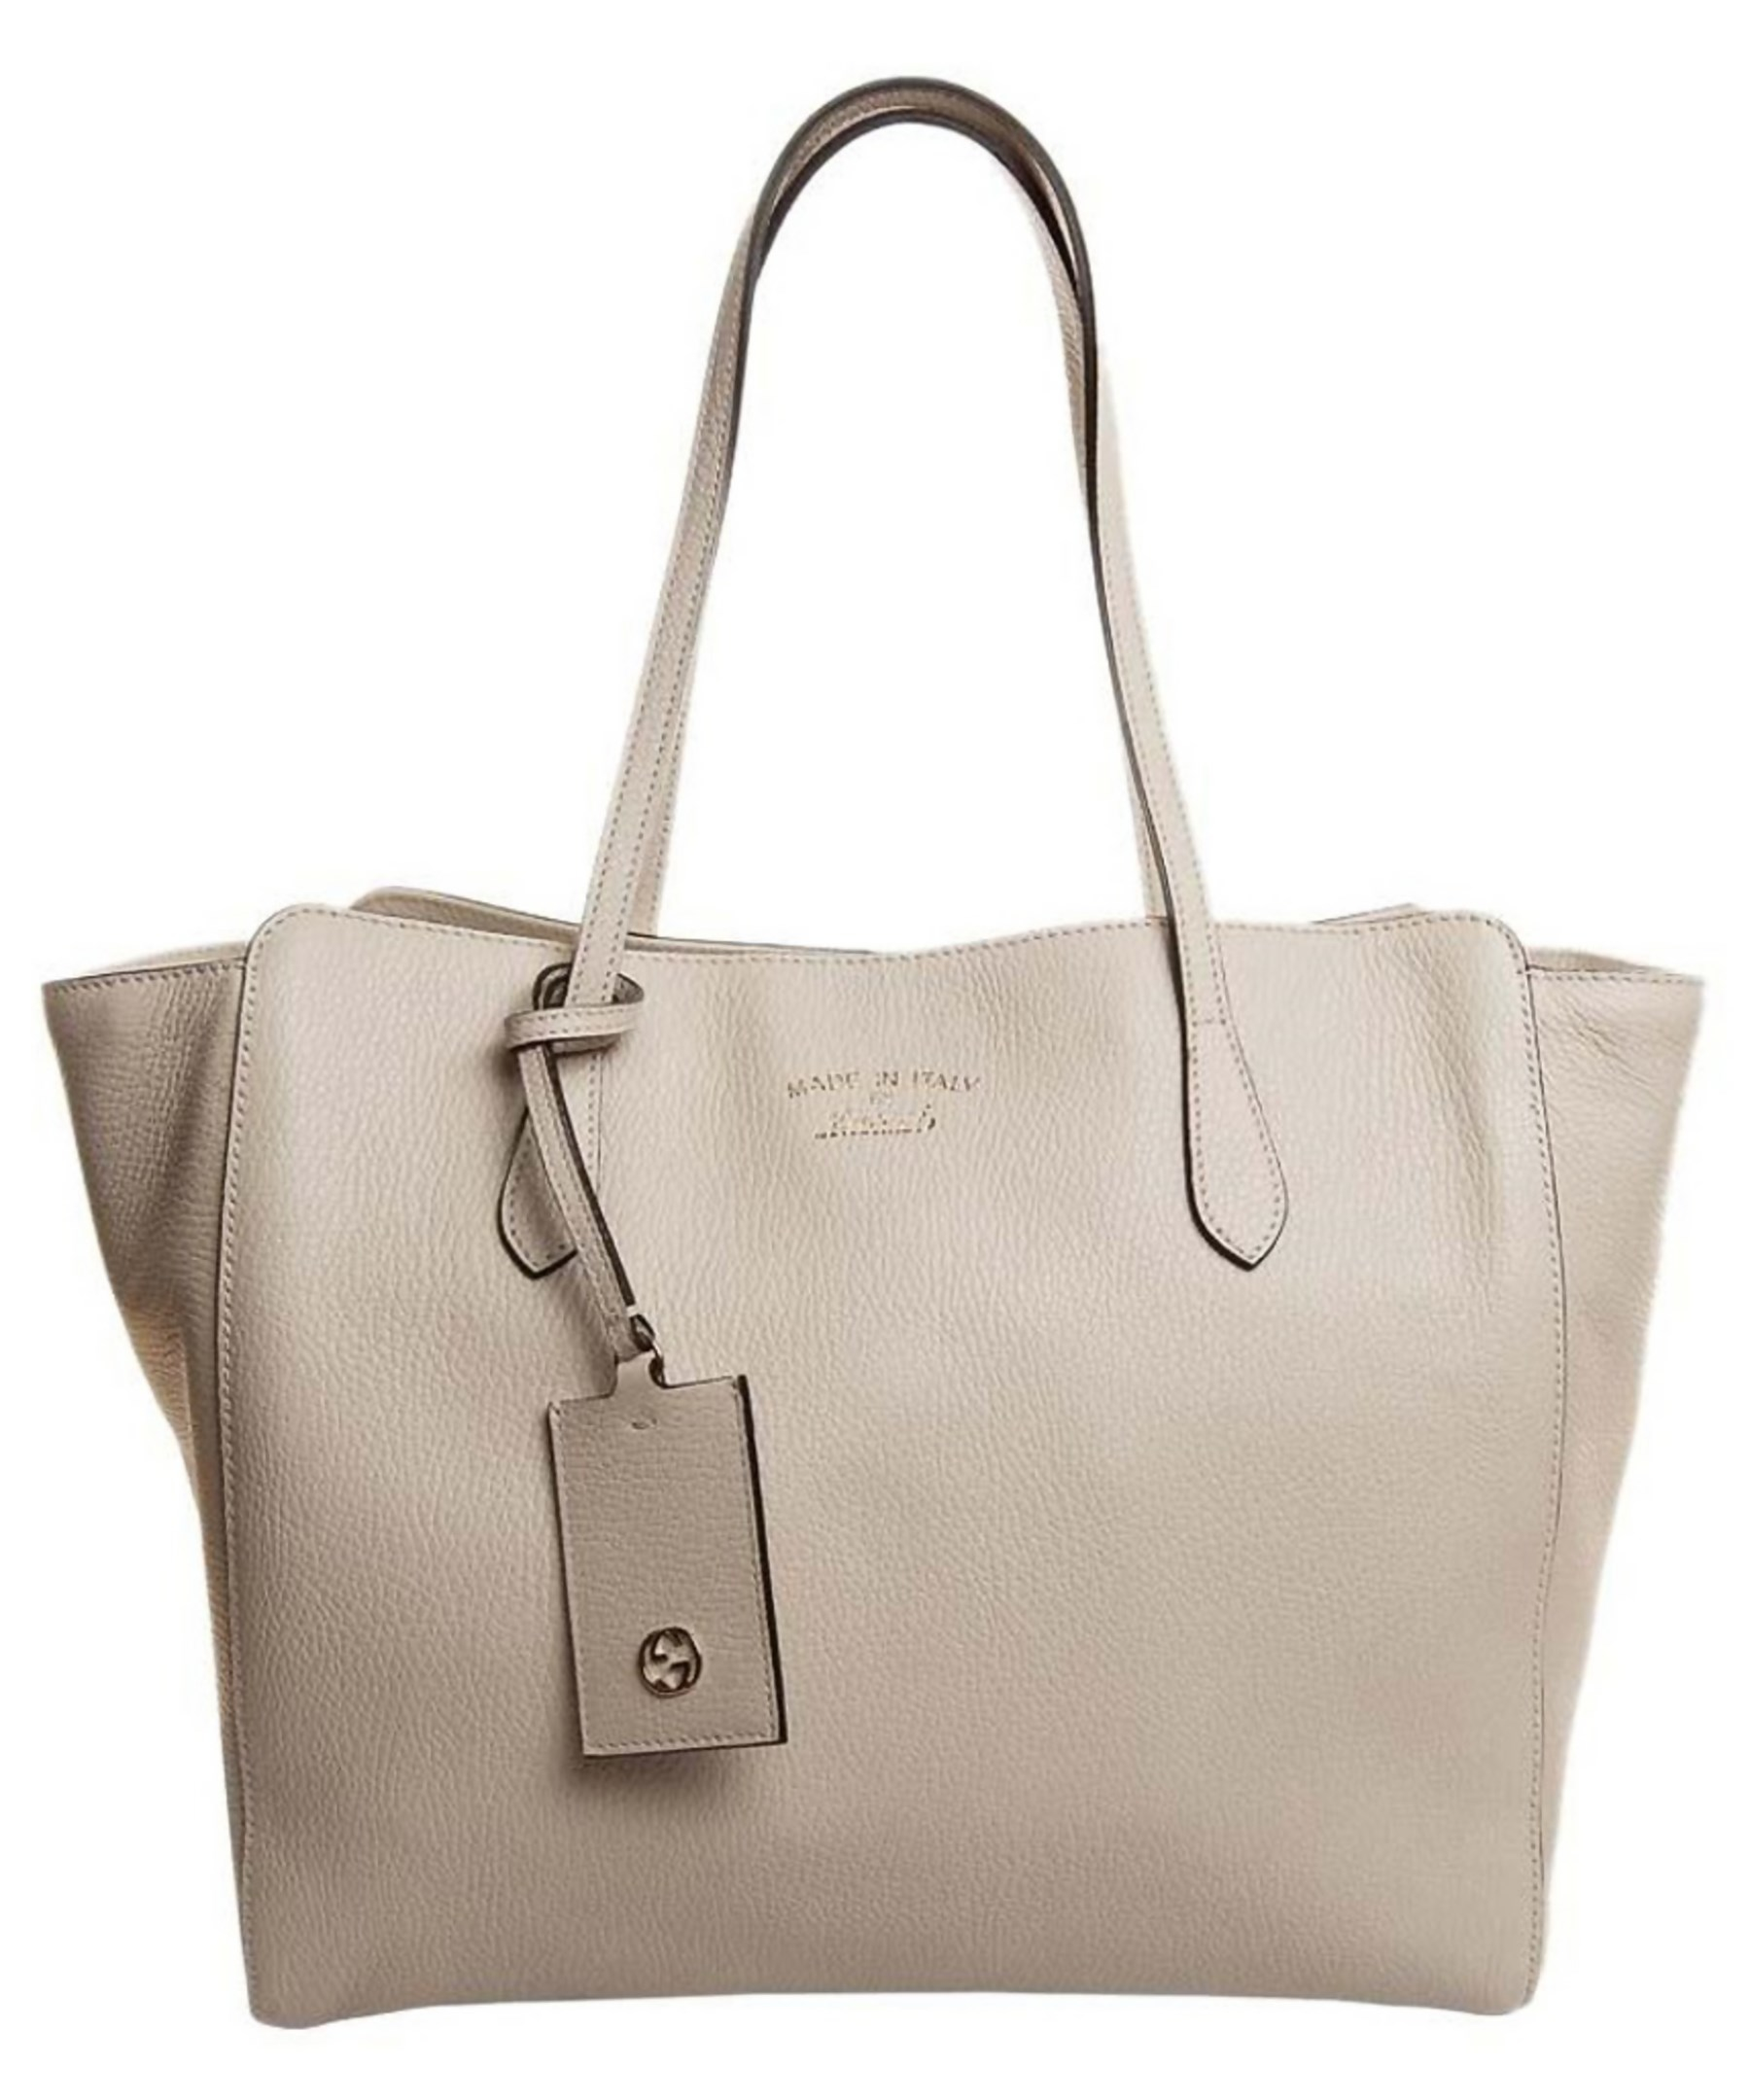 4974d2bef11588 Gucci Swing Leather Tote Bag | Stanford Center for Opportunity ...